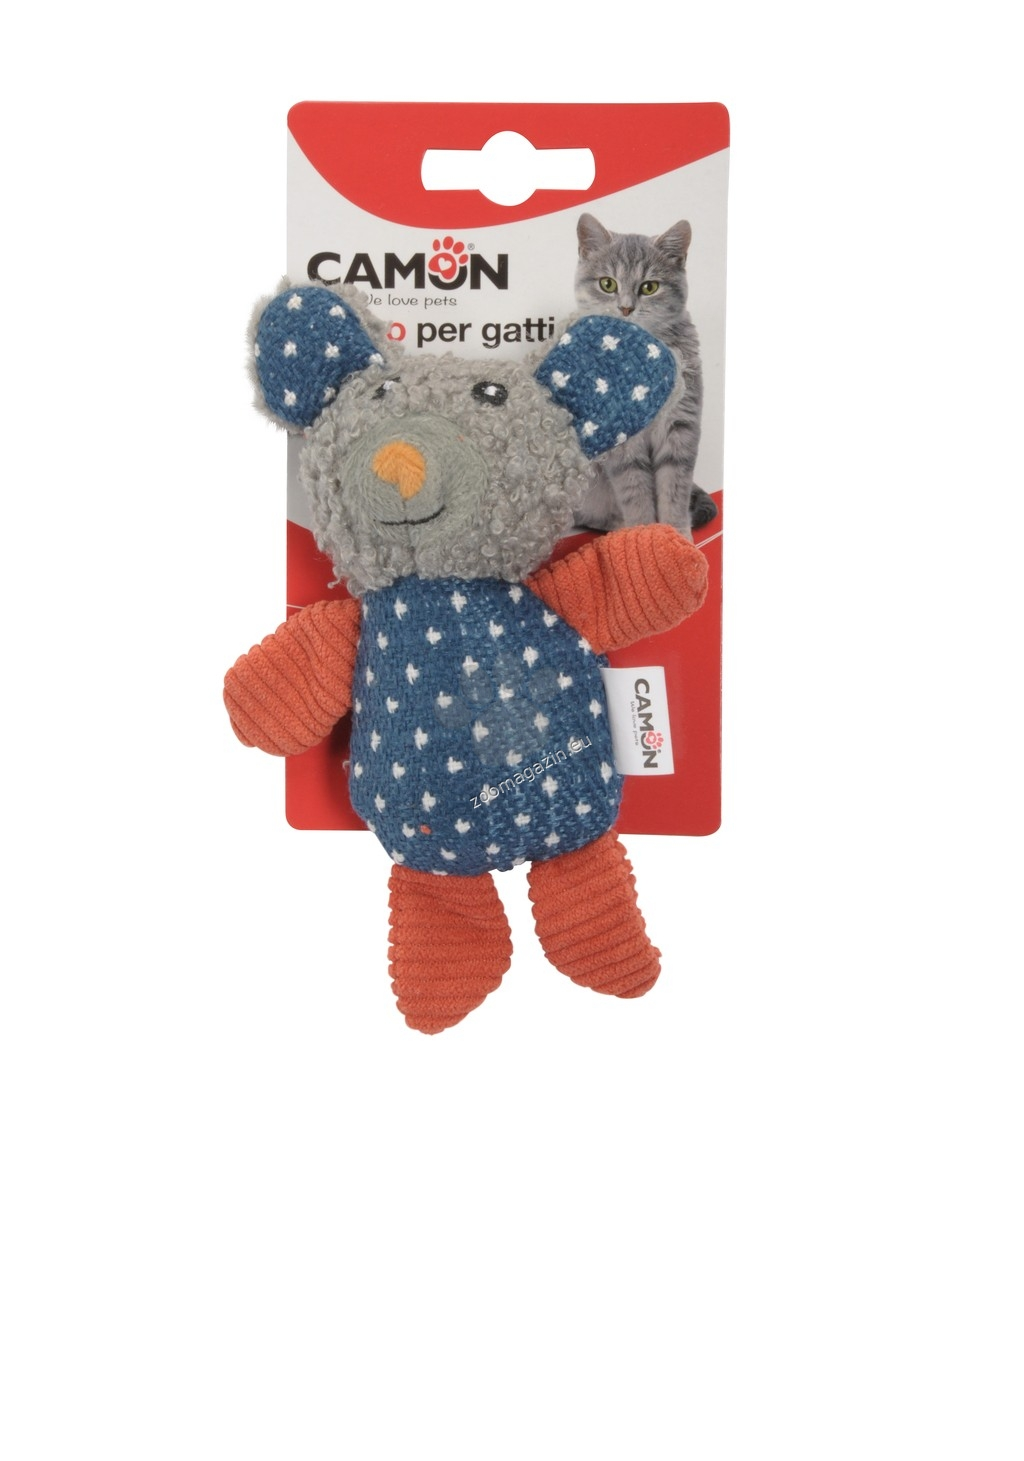 Camon Cat toy with catnip - Big mouse - котешка играчка